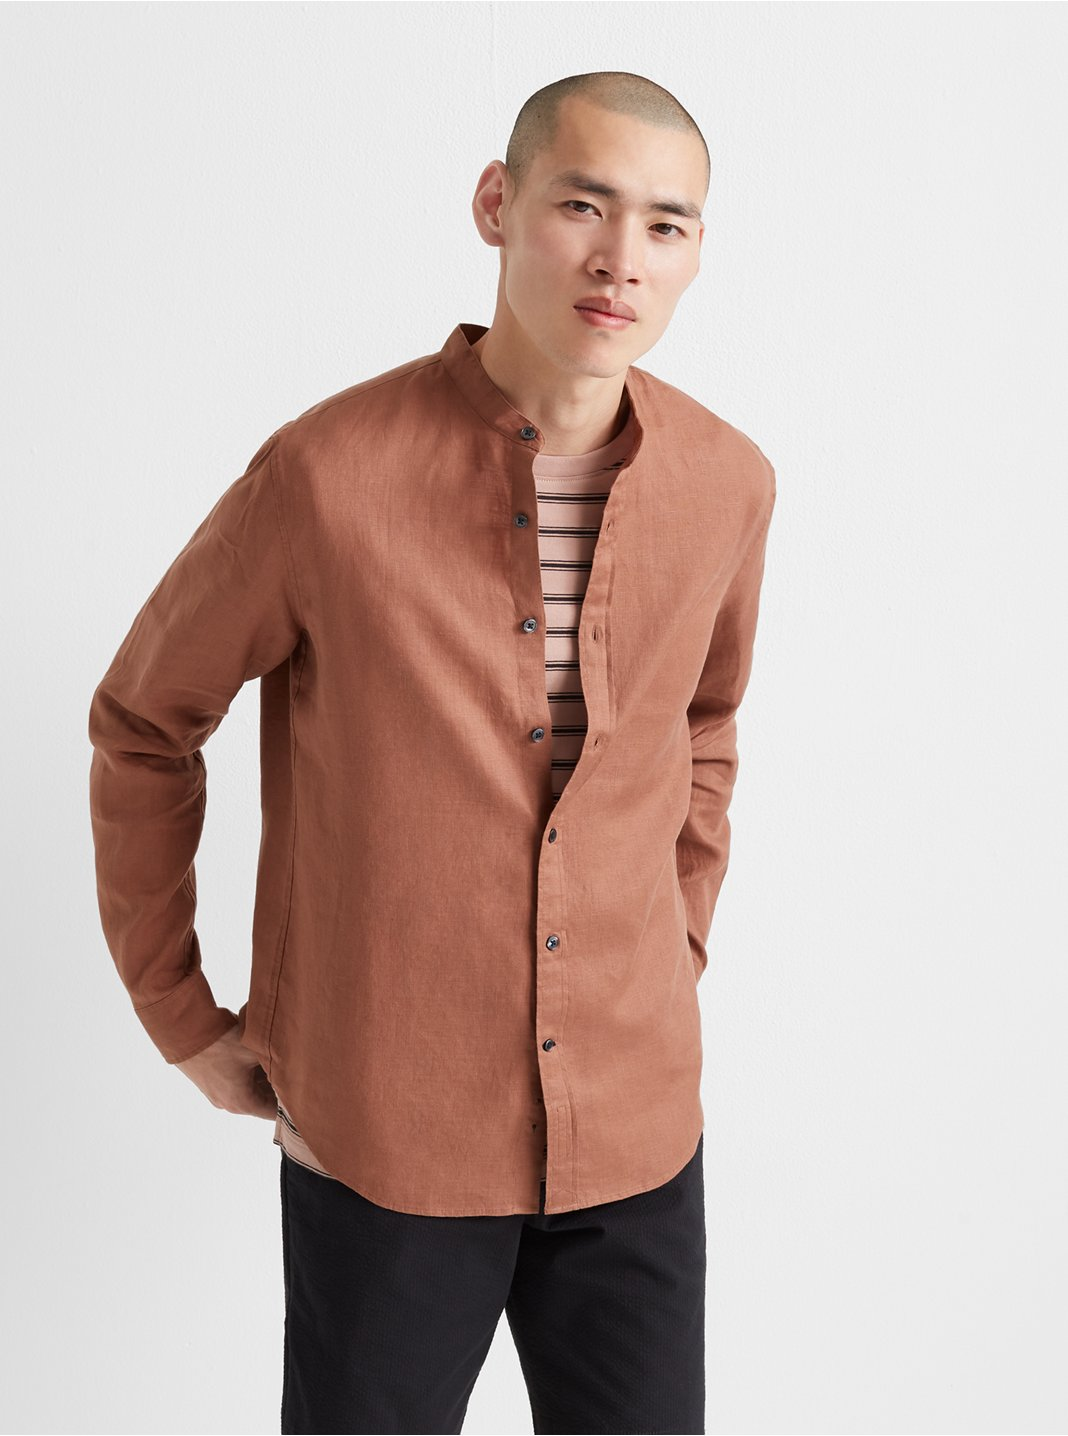 Band Collar Linen Shirt